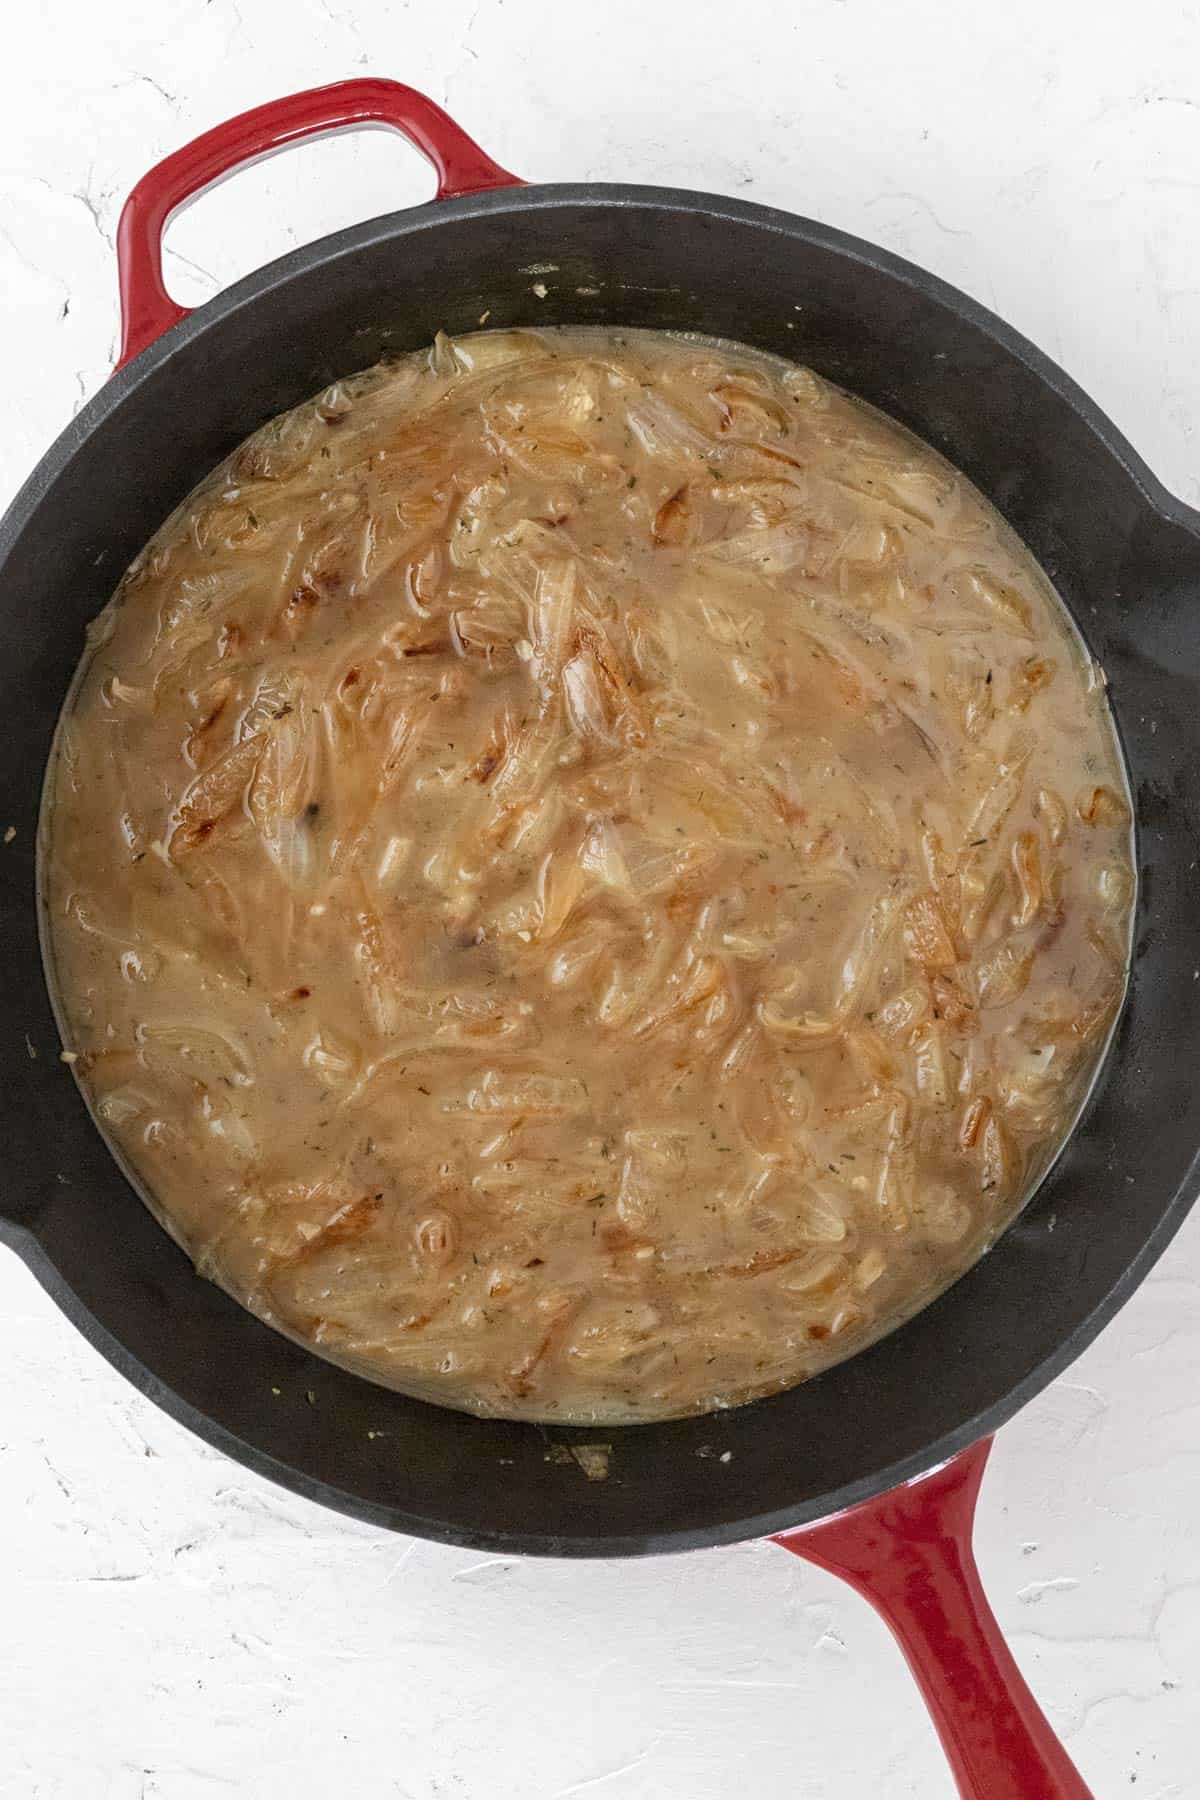 Broth added to the cast iron skillet with the caramelized onions.